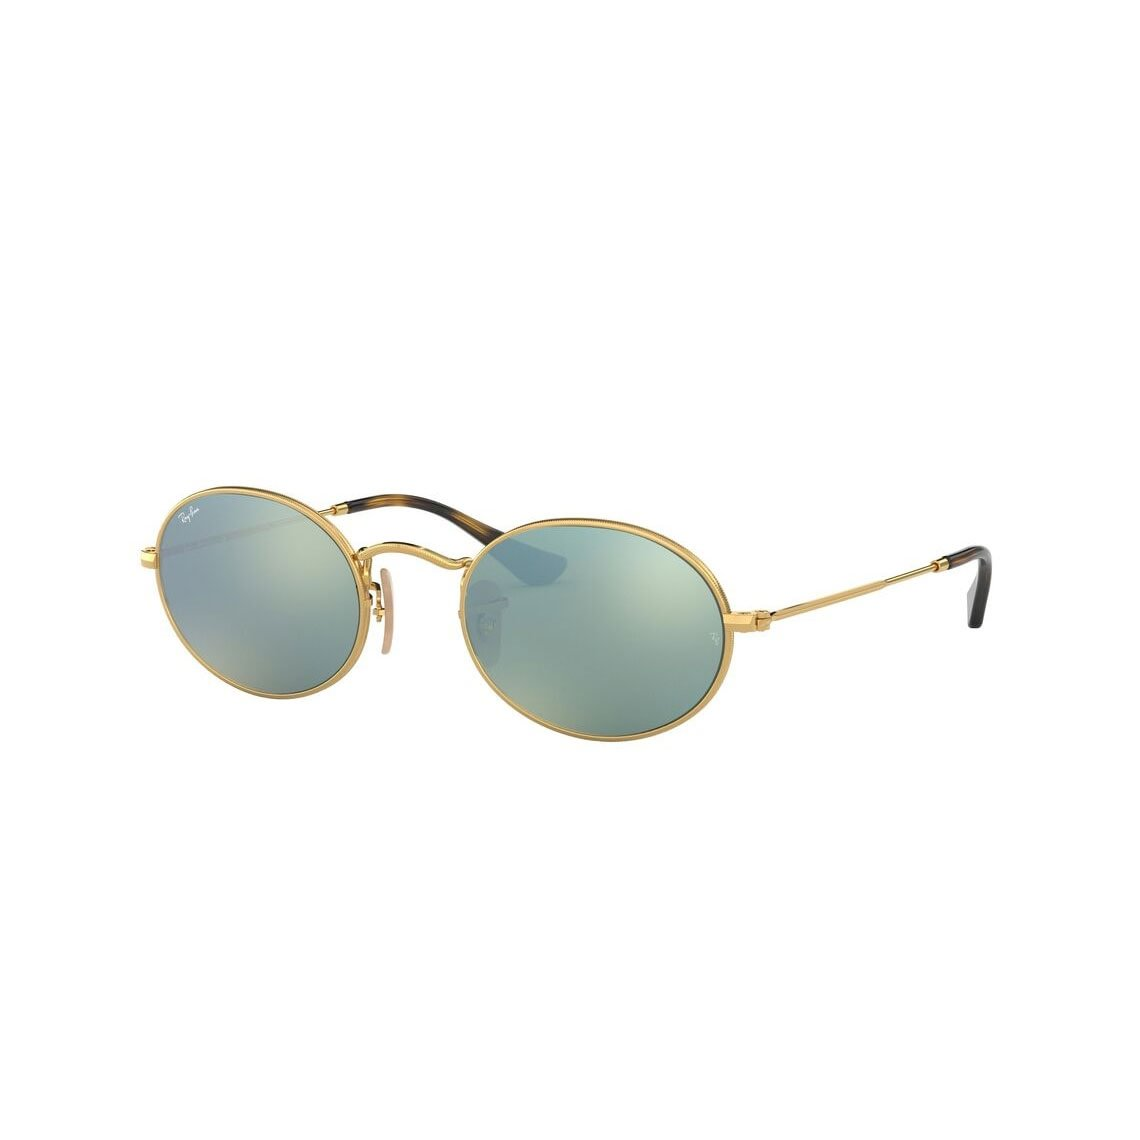 Ray-Ban Oval flat lenses RB3547N 001/30 51